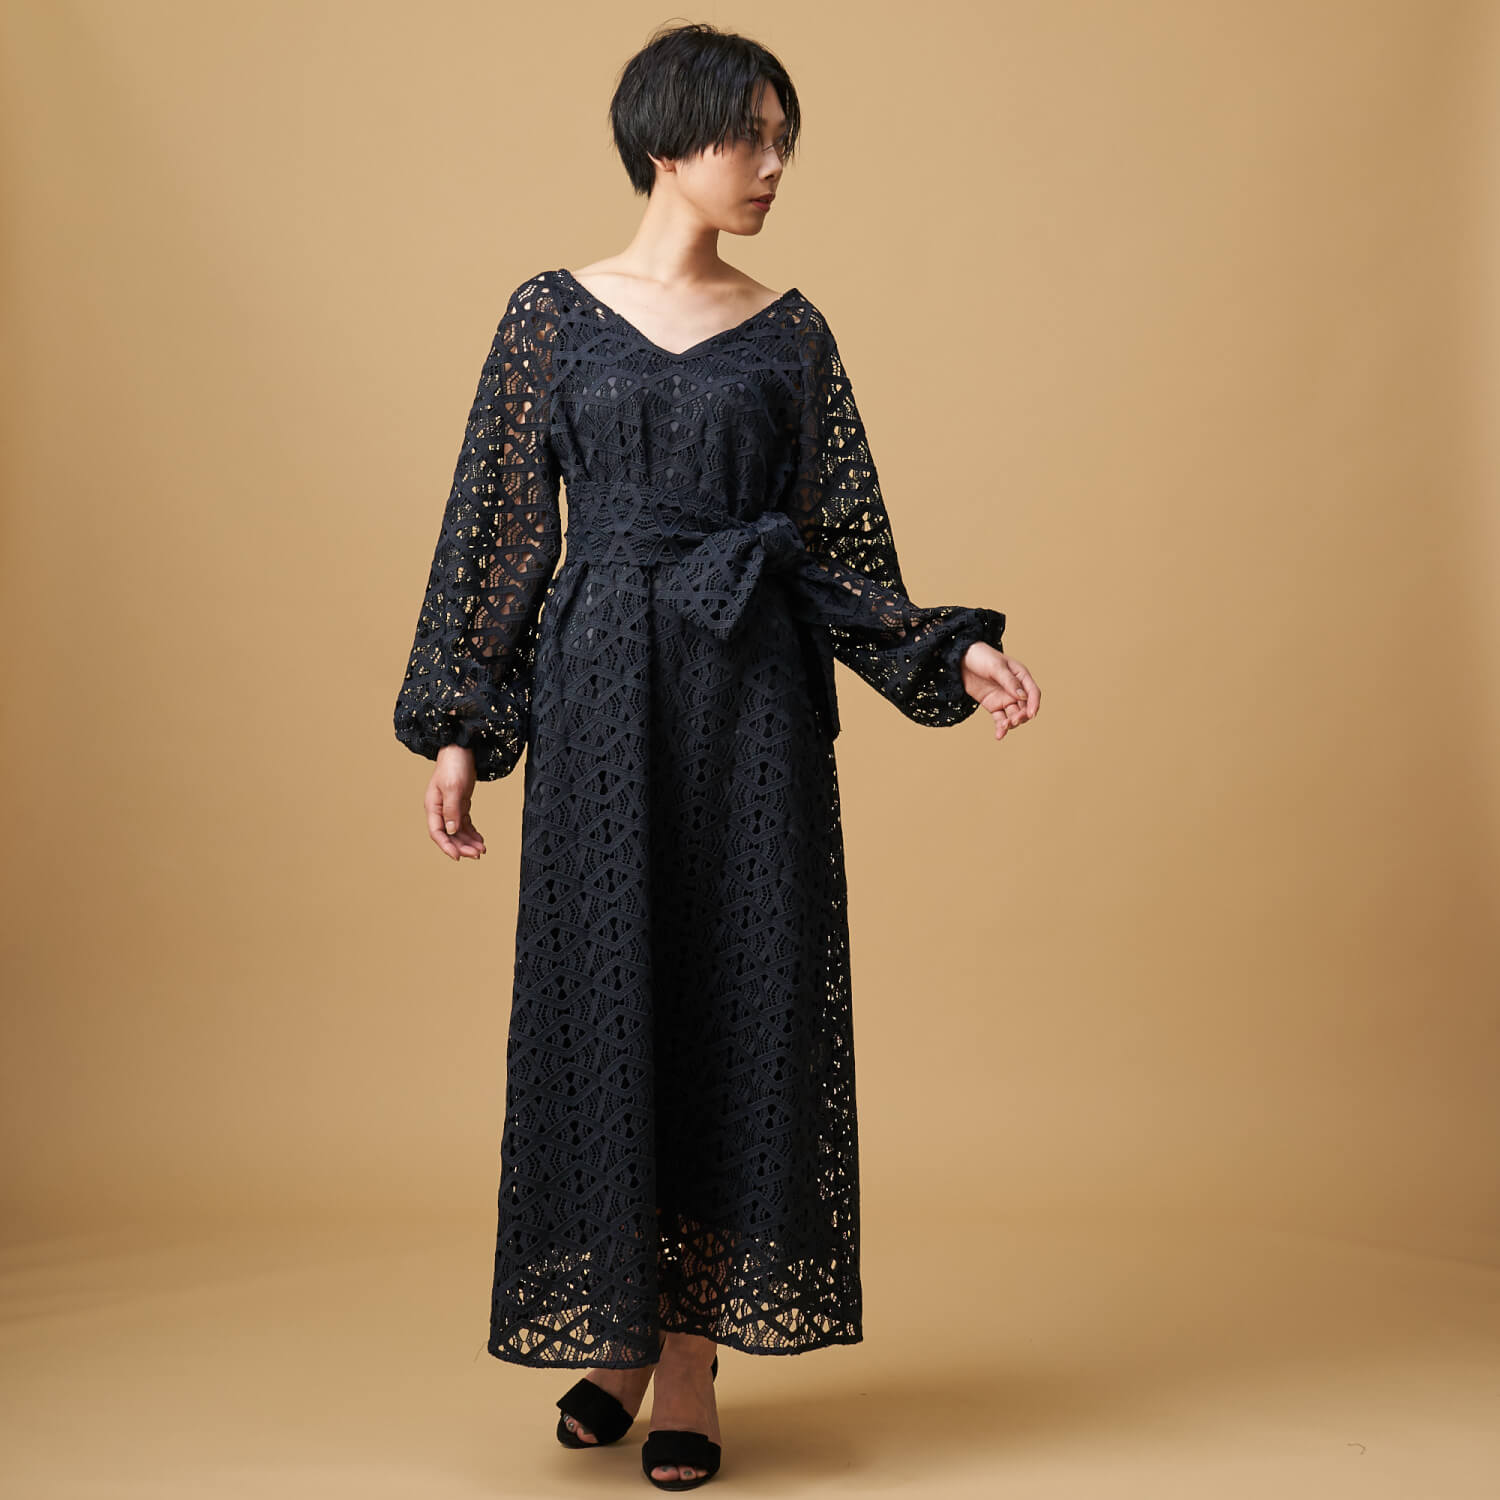 DRESS 46,000円+tax forget me not BY TINA CHAI